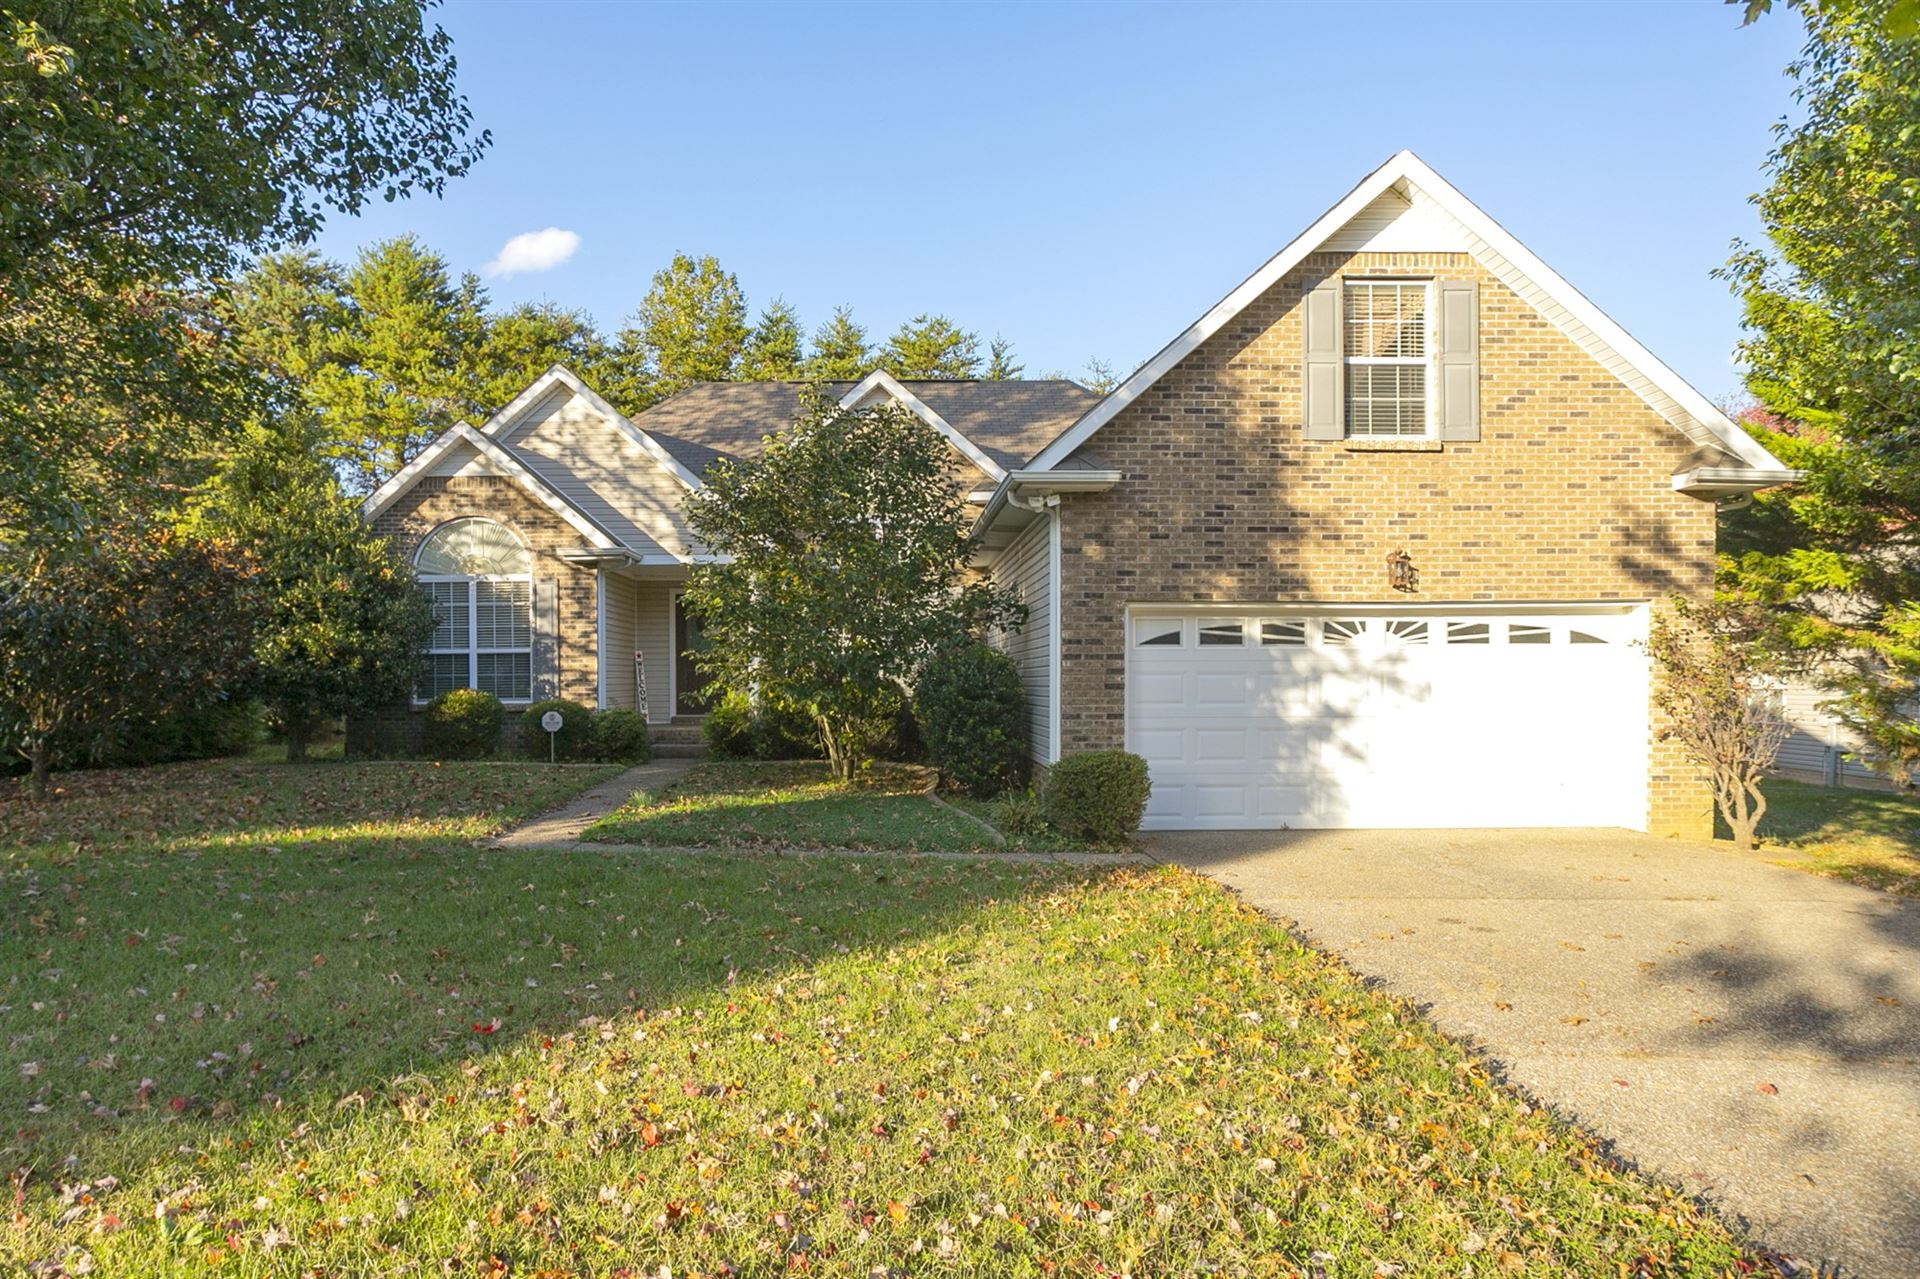 213 Holly Ln, White House, TN 37188 - MLS#: 2202588